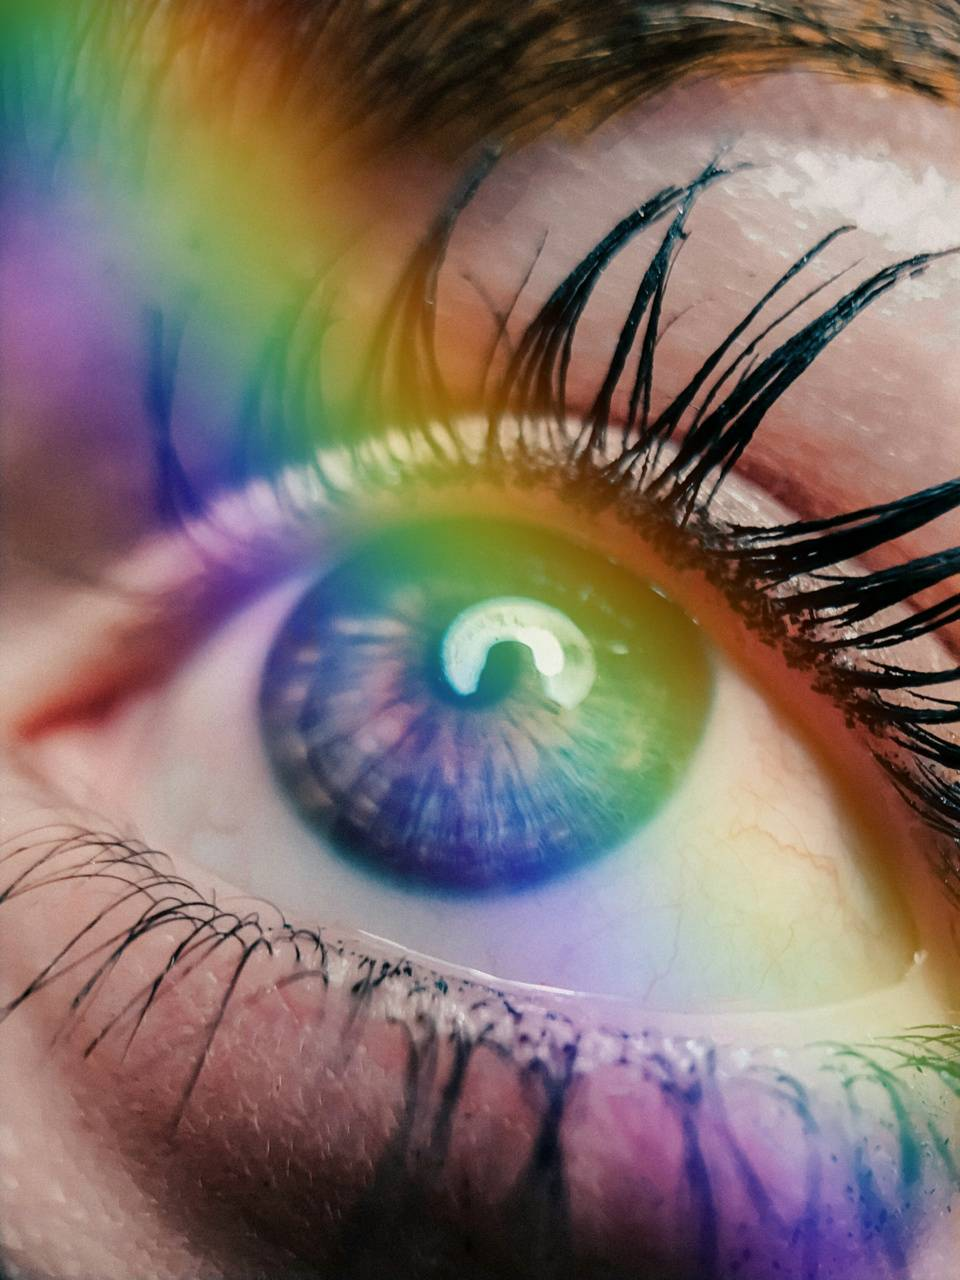 Eye from the rainbow